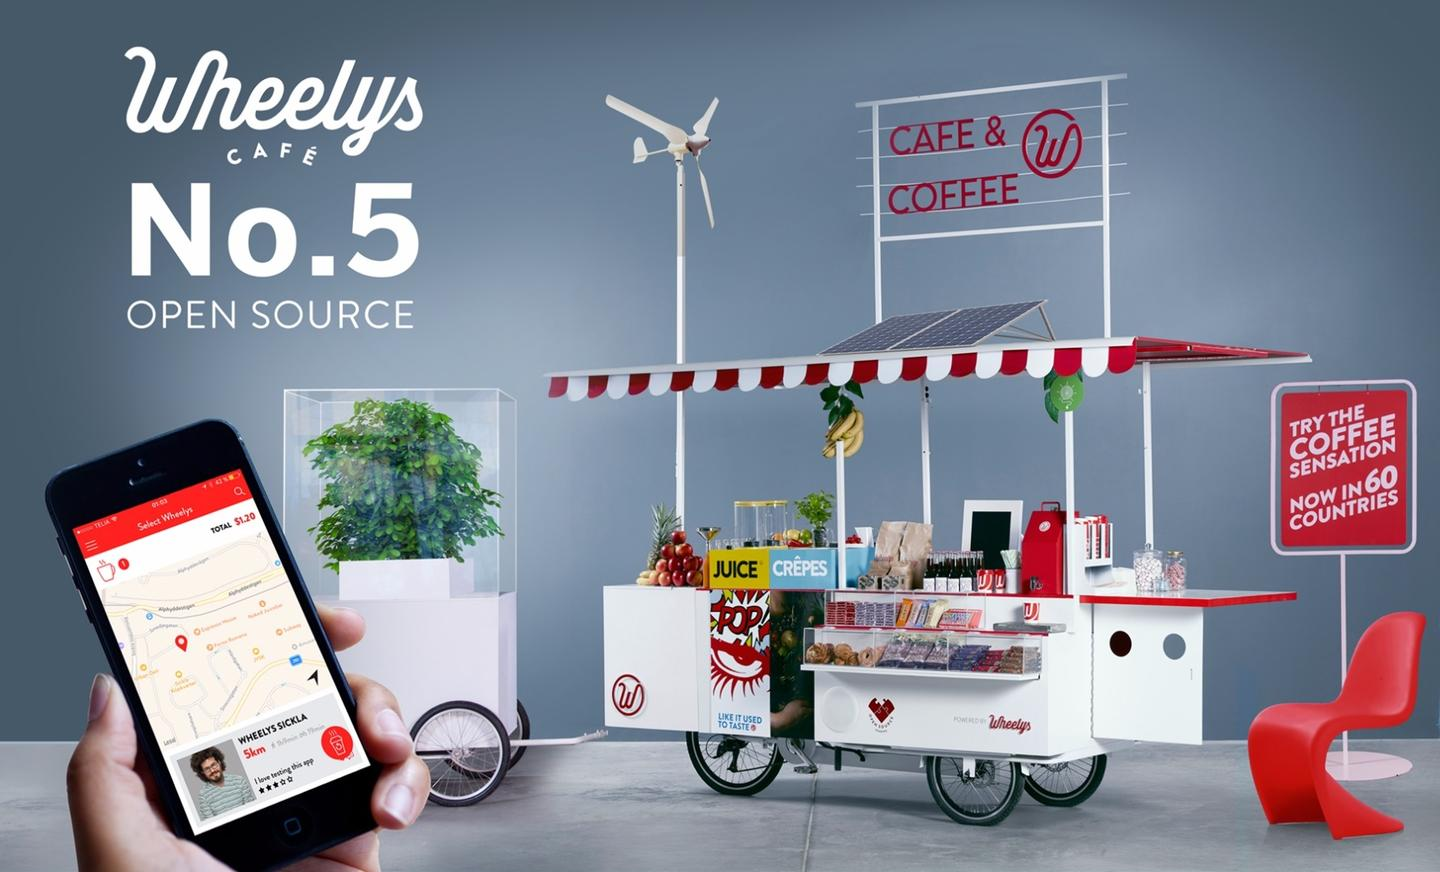 """The Wheelys 5 bike is dubbed the """"Open Source,"""" because it can be tailored and adapted to the barista's requirements"""